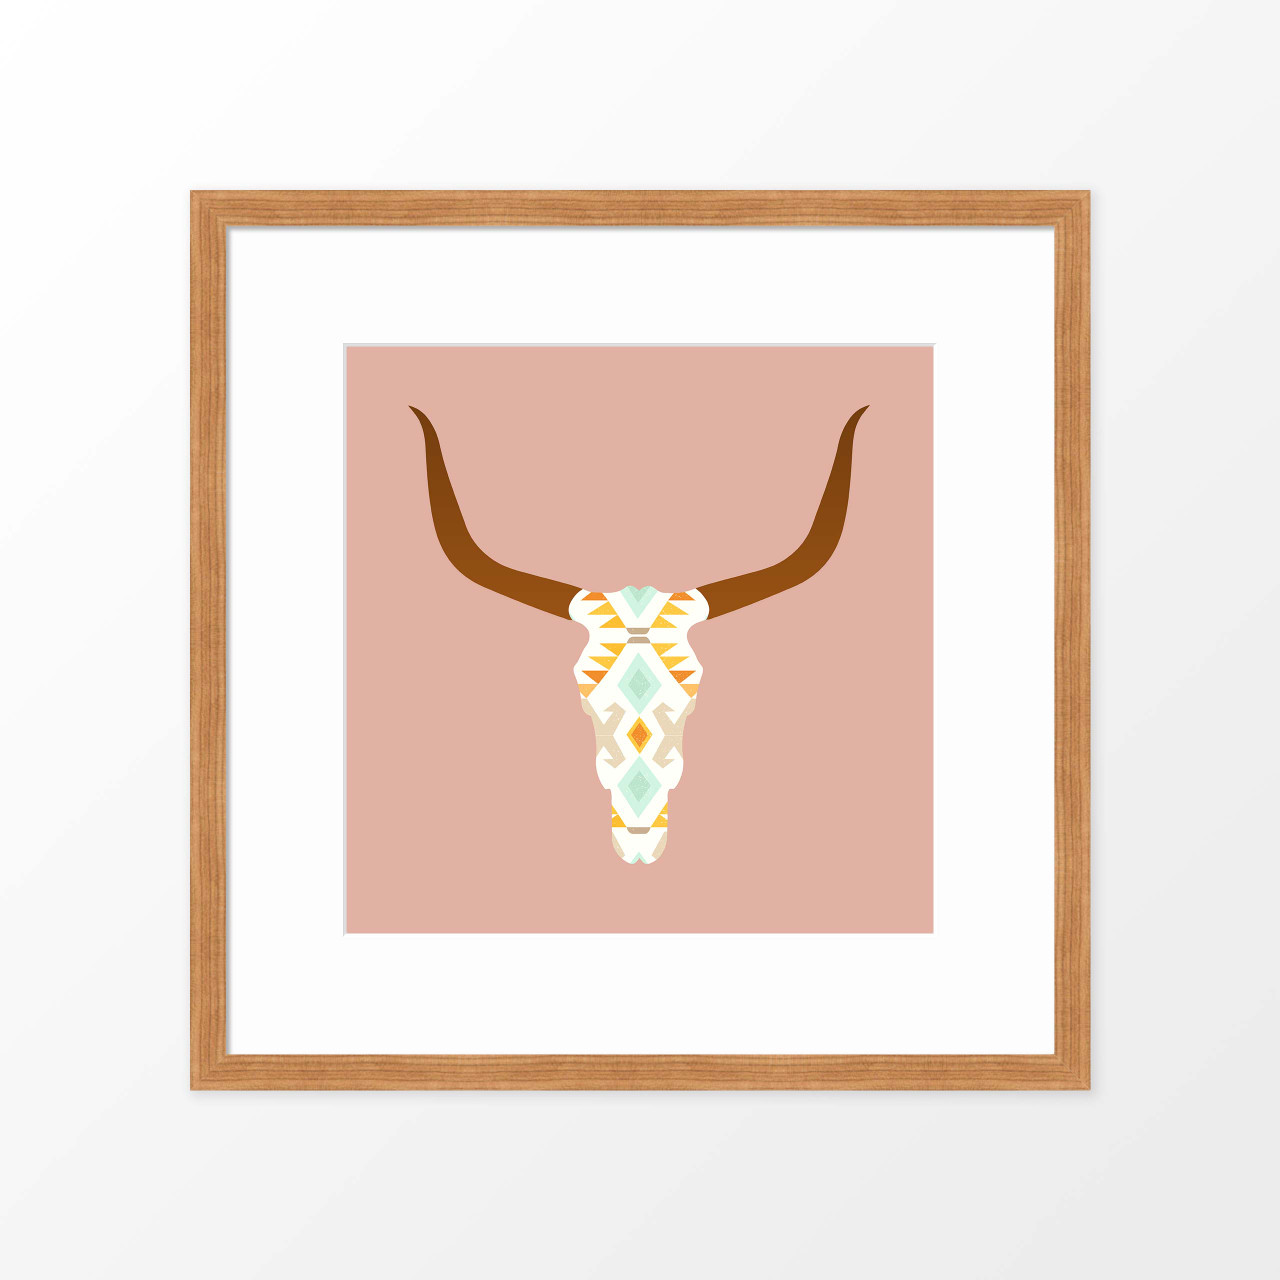 'Longhorn Skull' Art Poster in Pink from The Printed Home